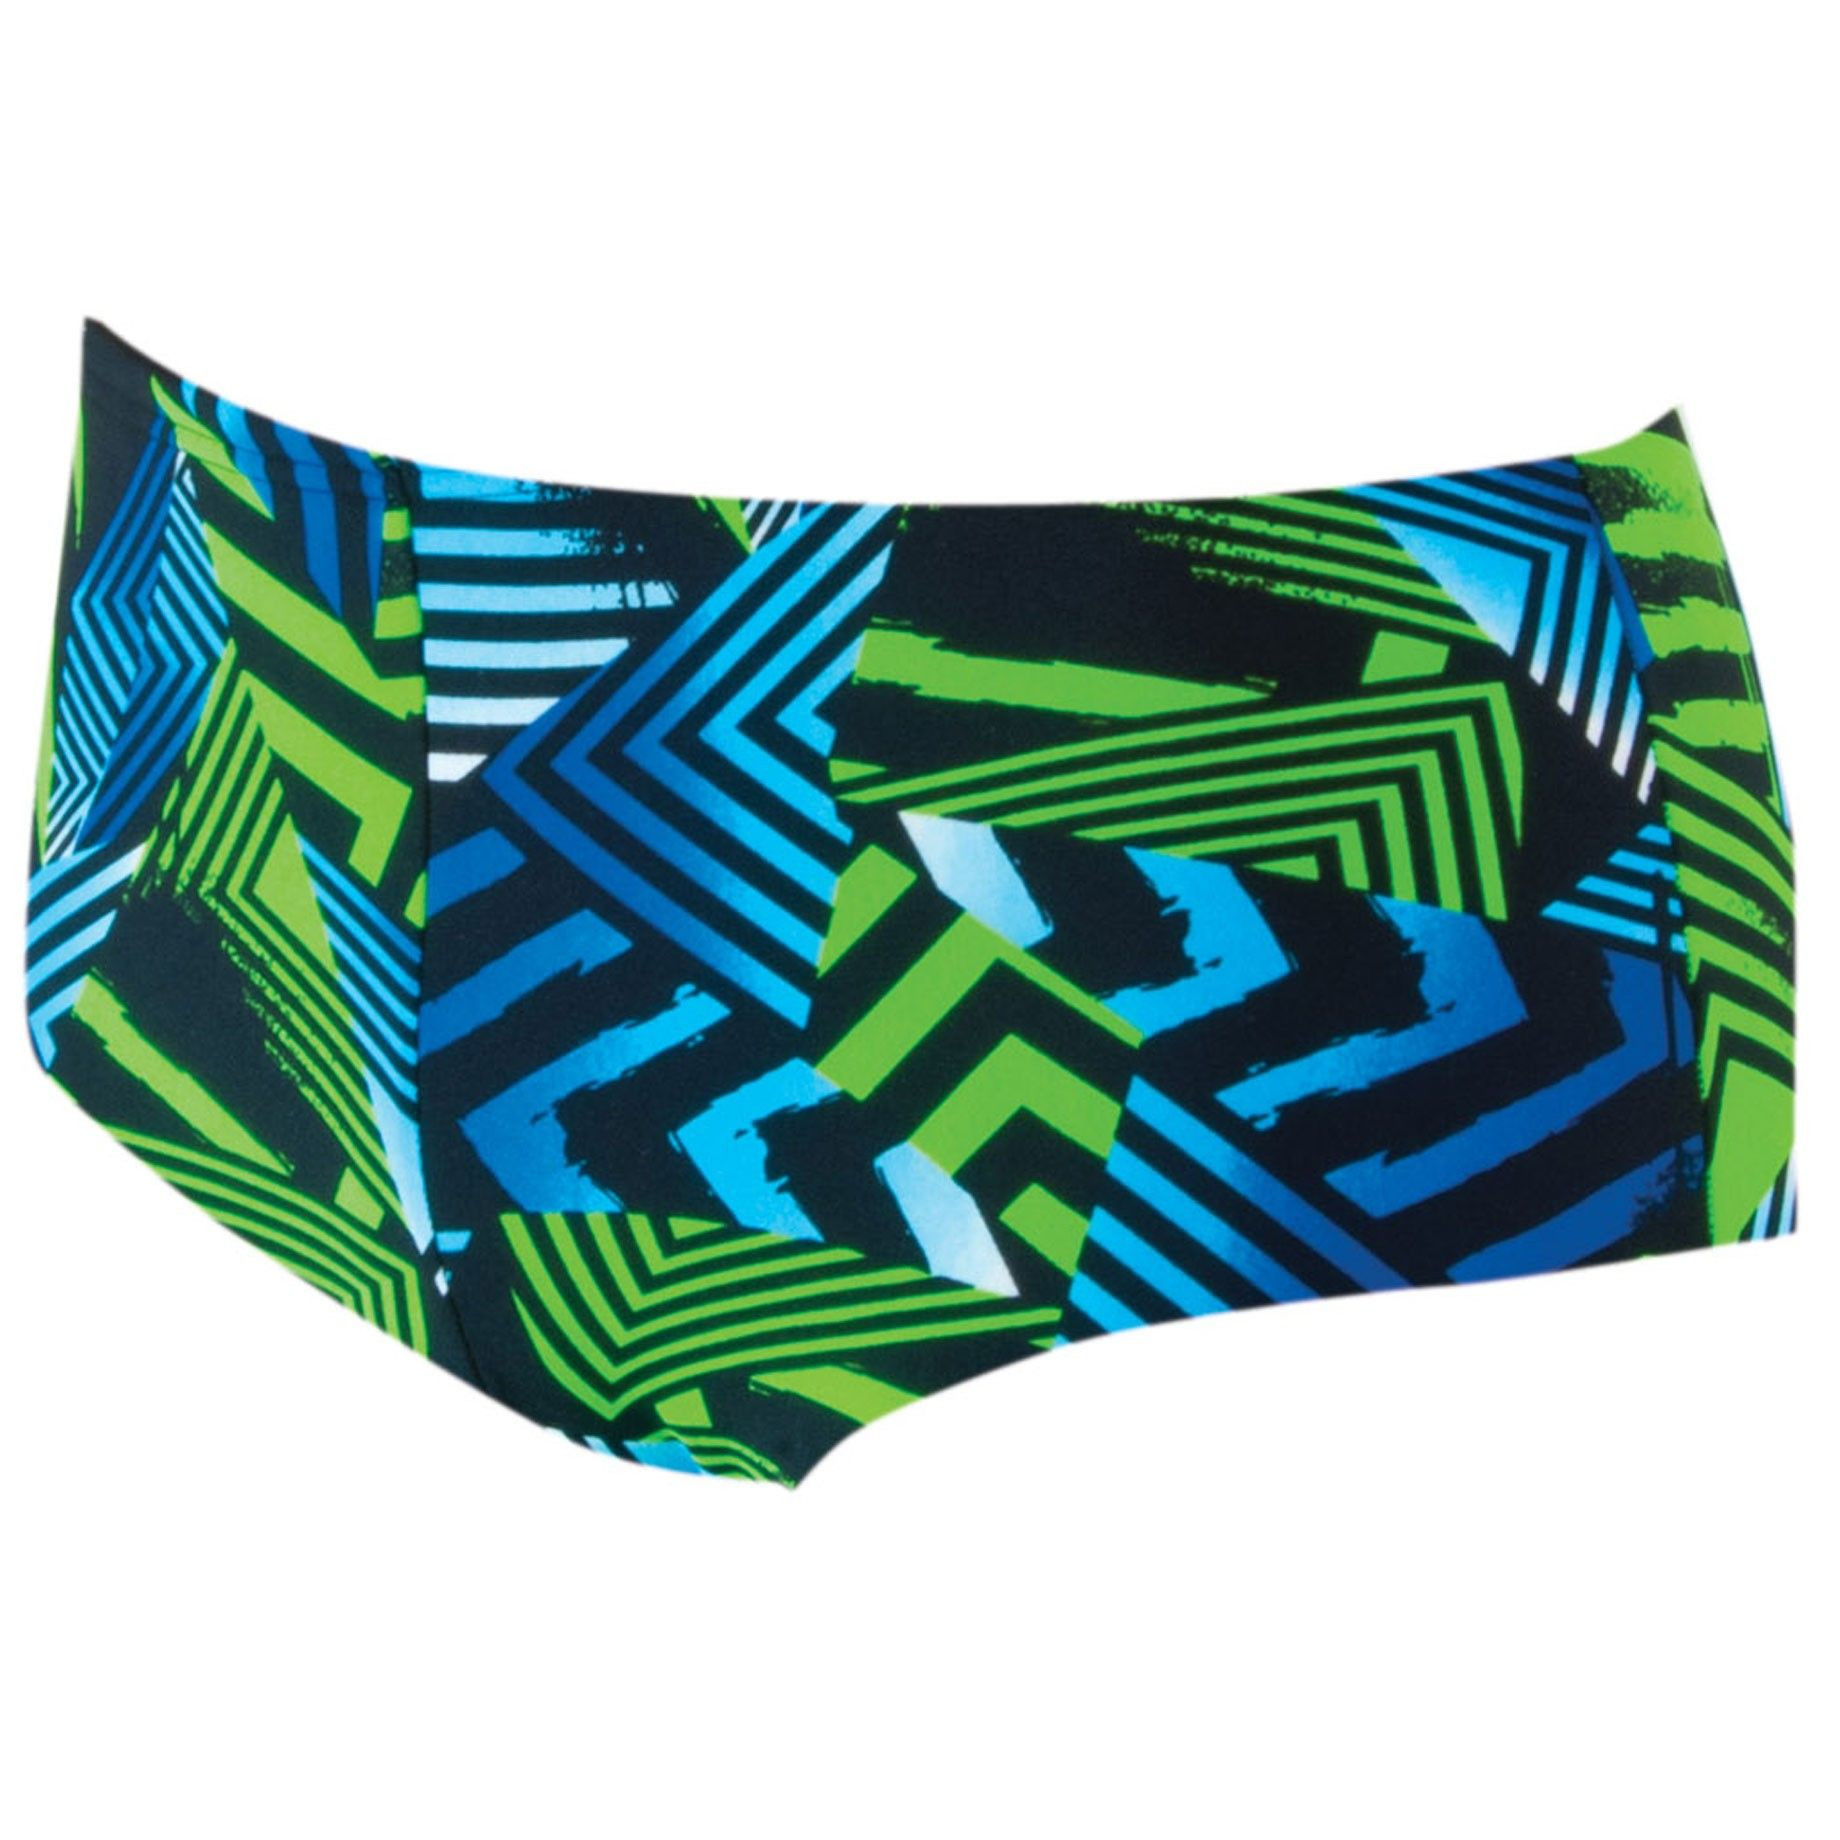 Zoggs Mens Optic Sport Toggs Striking Zoggs Toggs in